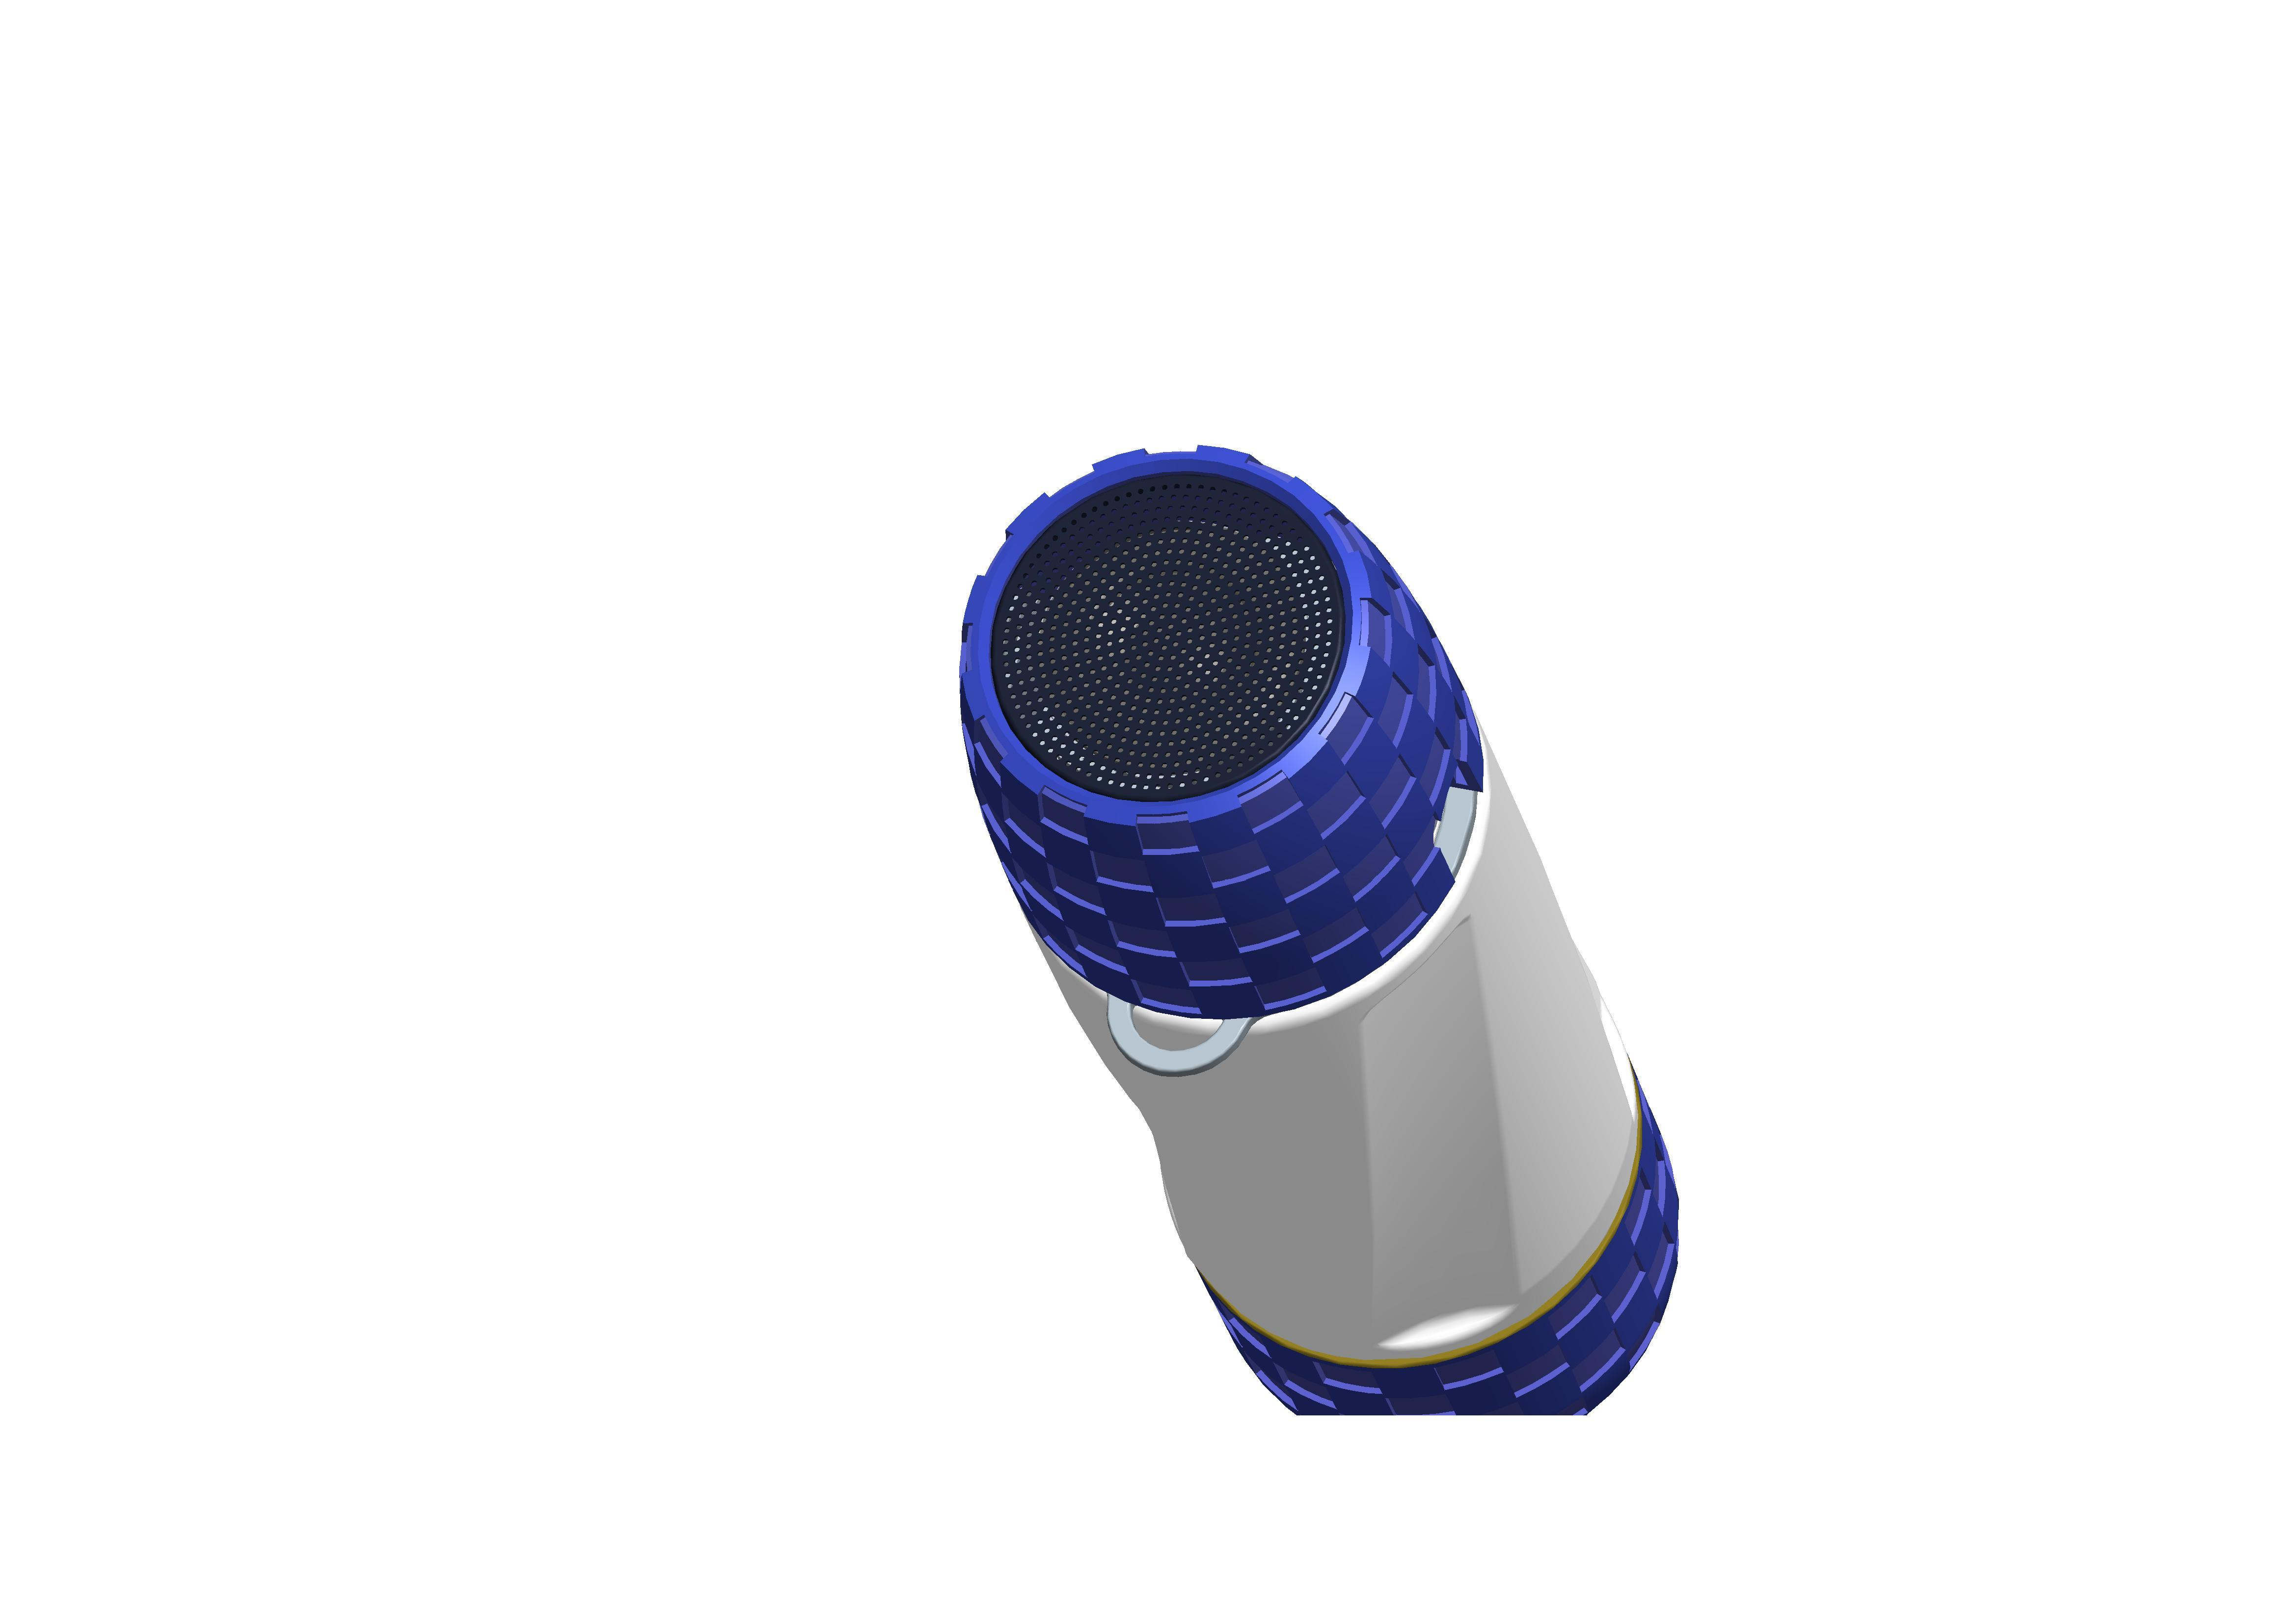 2017 Newest Design Sports Bluetooth Speaker with Heat Preservation Water Bottle and Power Bank (OITA-9900)